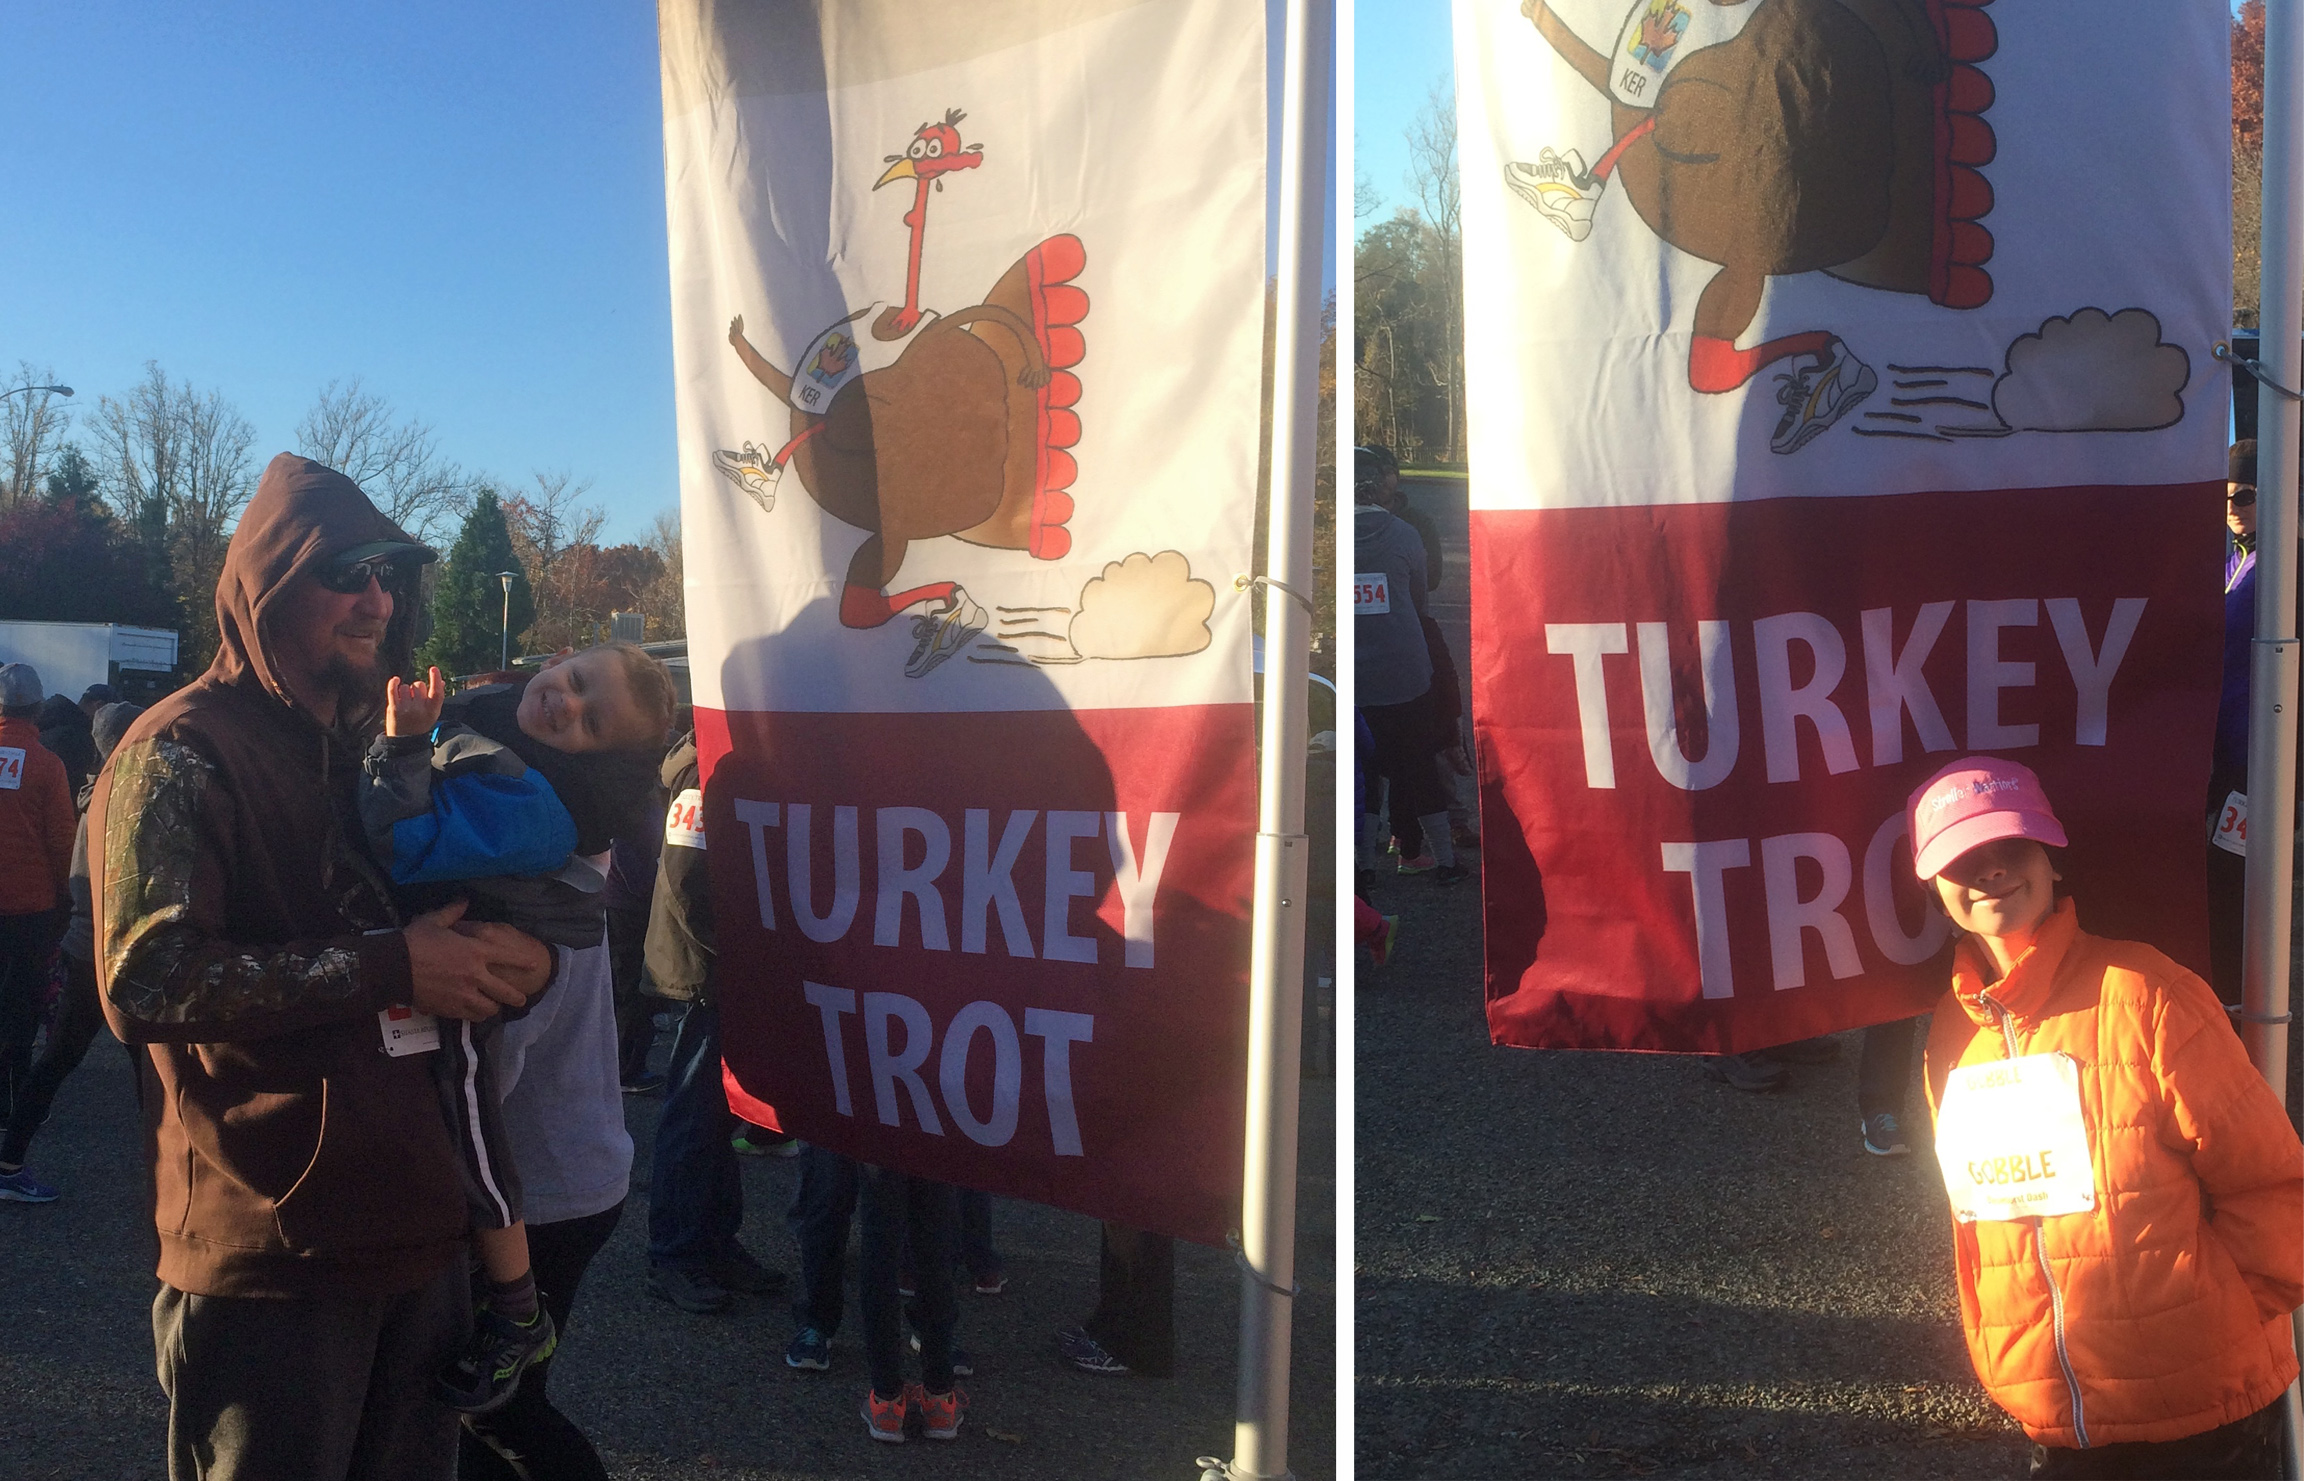 Turkey Trot Sign